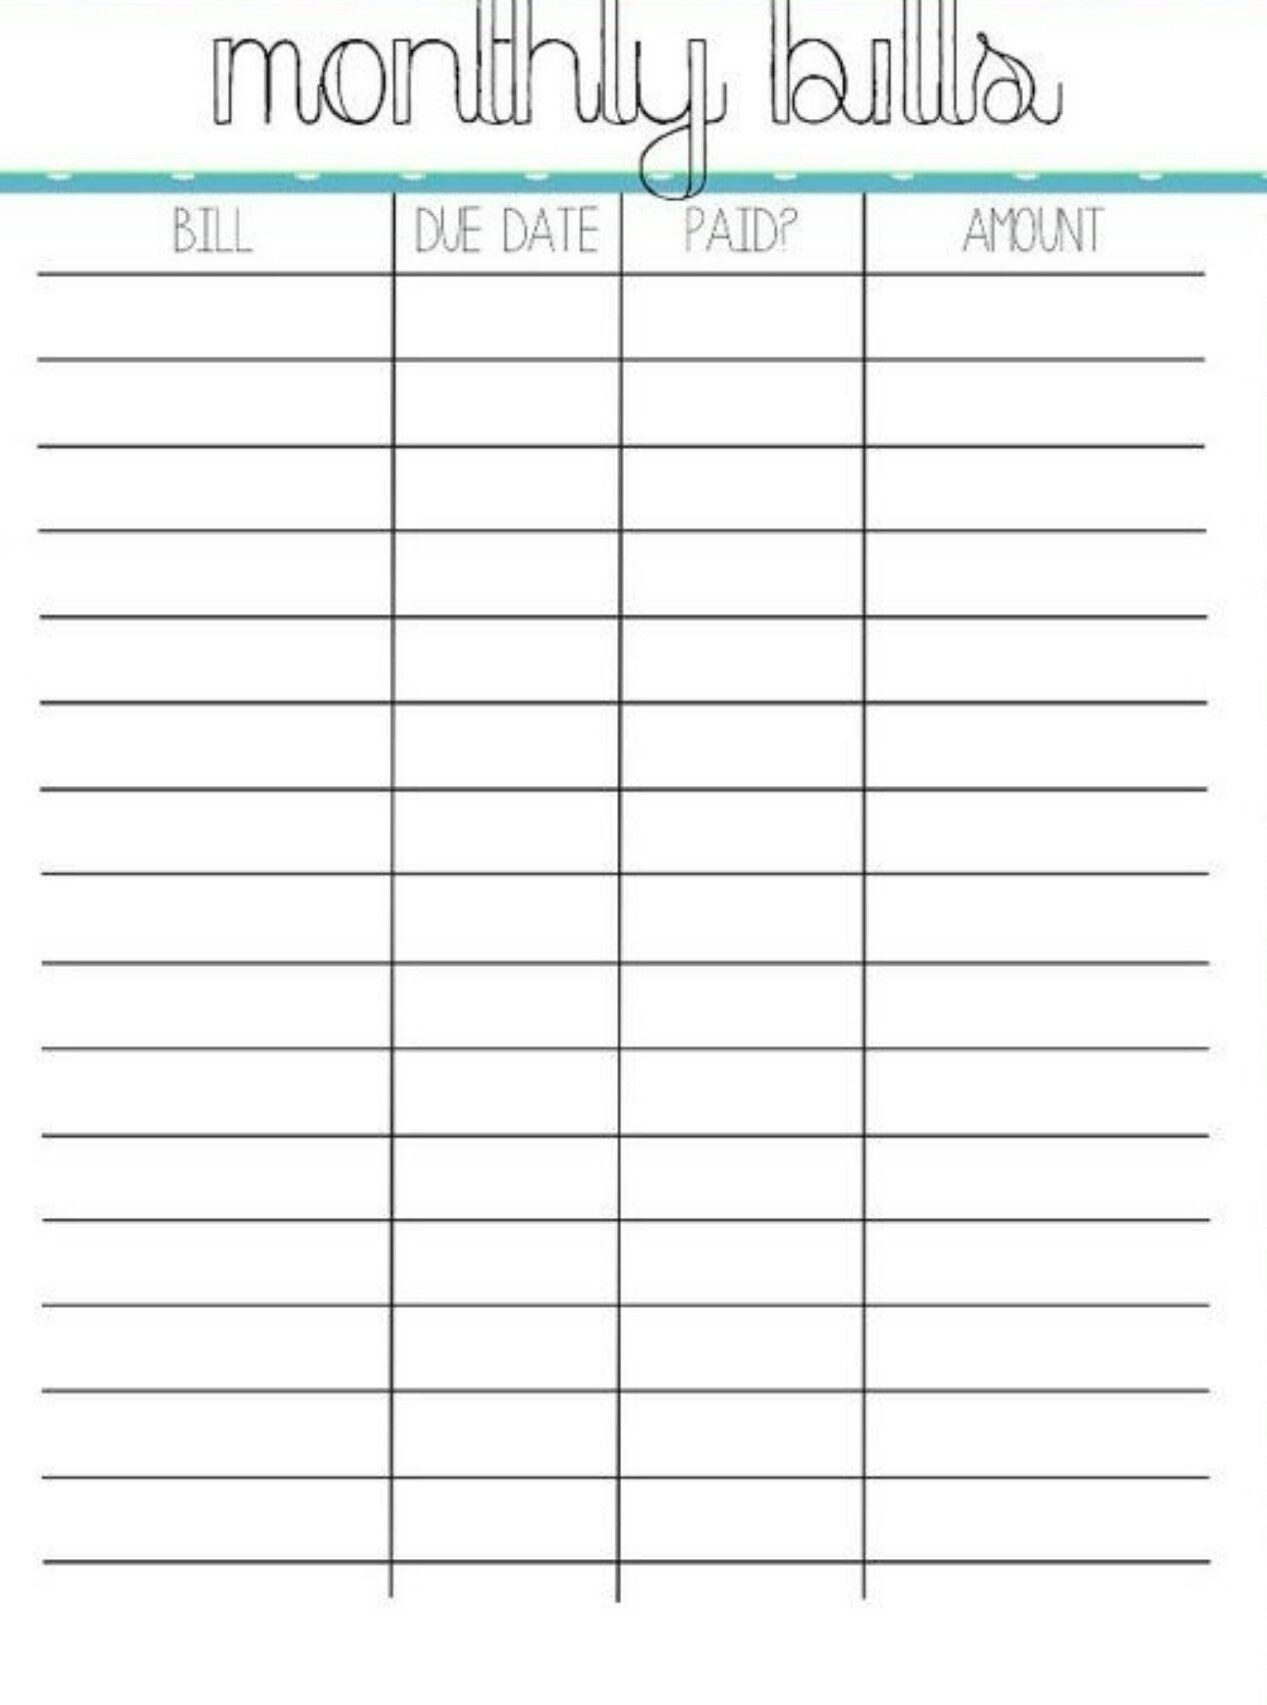 Monthly Bill Template Free Printable In 2020 | Monthly  Free Printable Monthly Bill Template